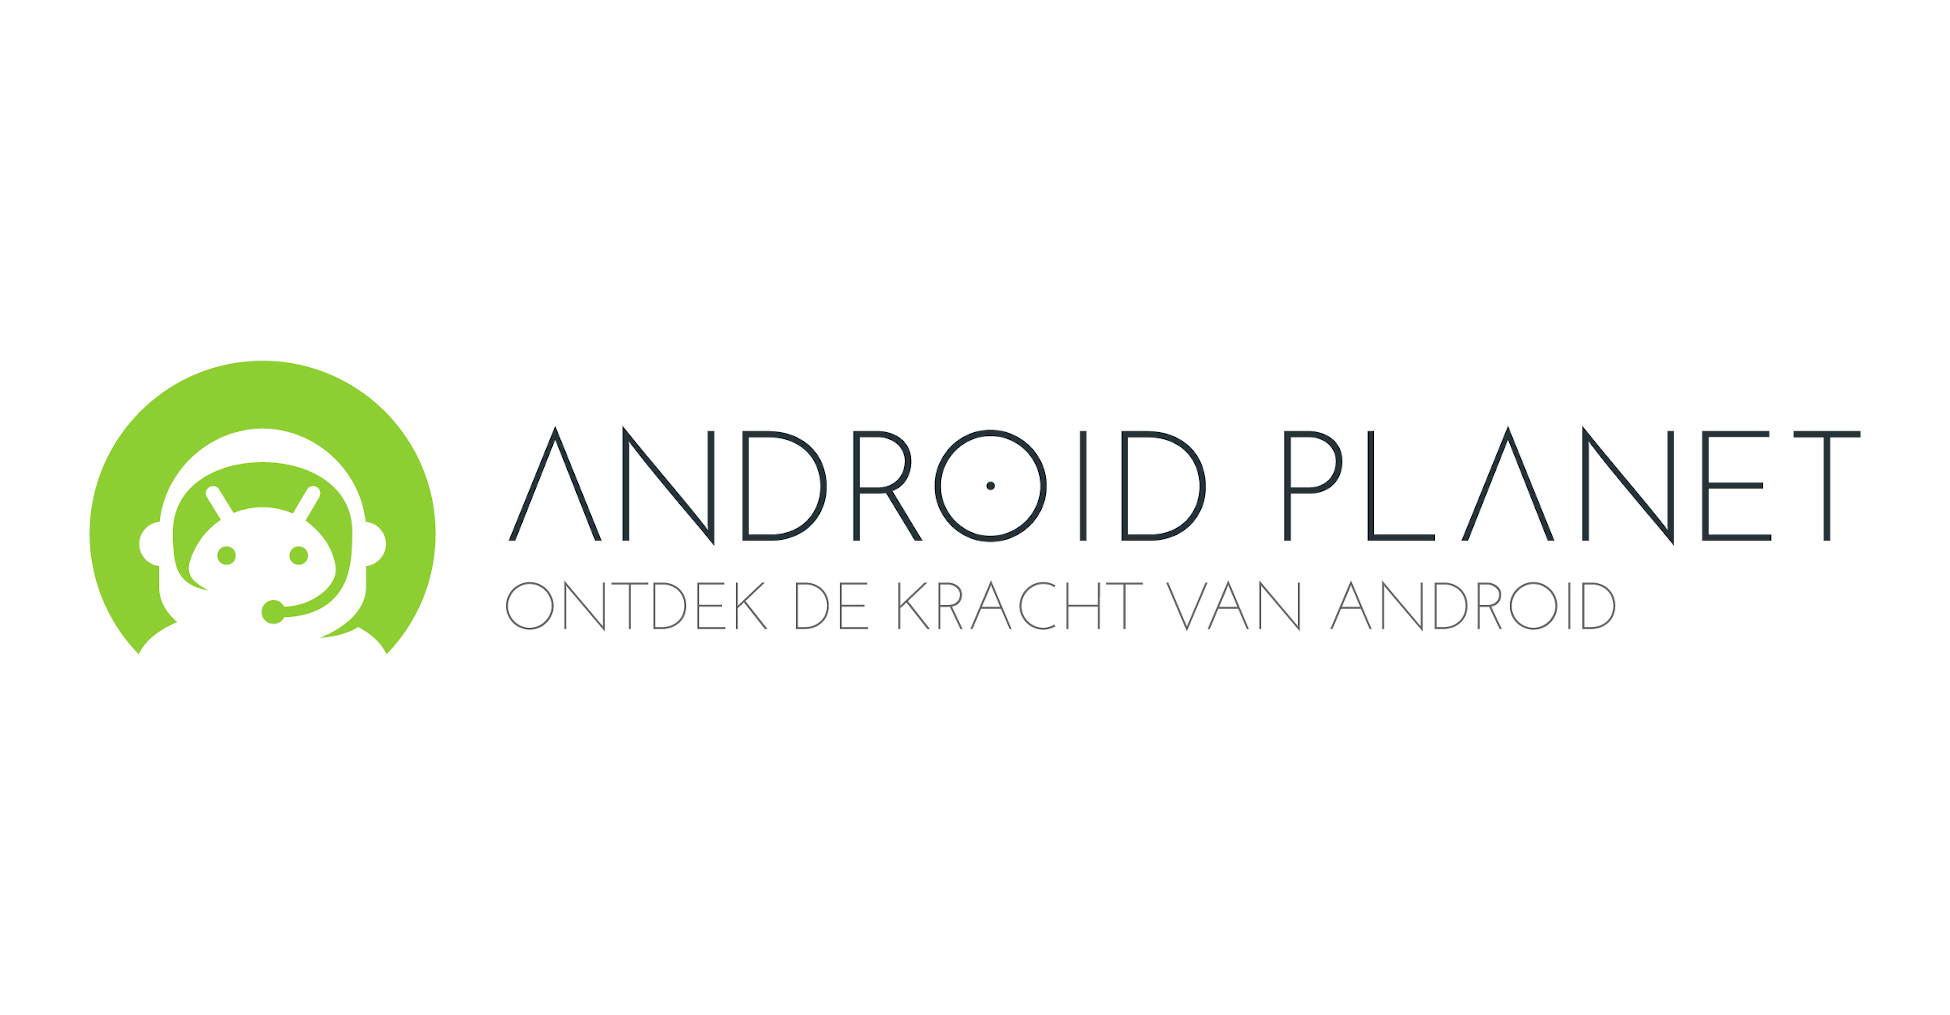 (c) Androidplanet.nl